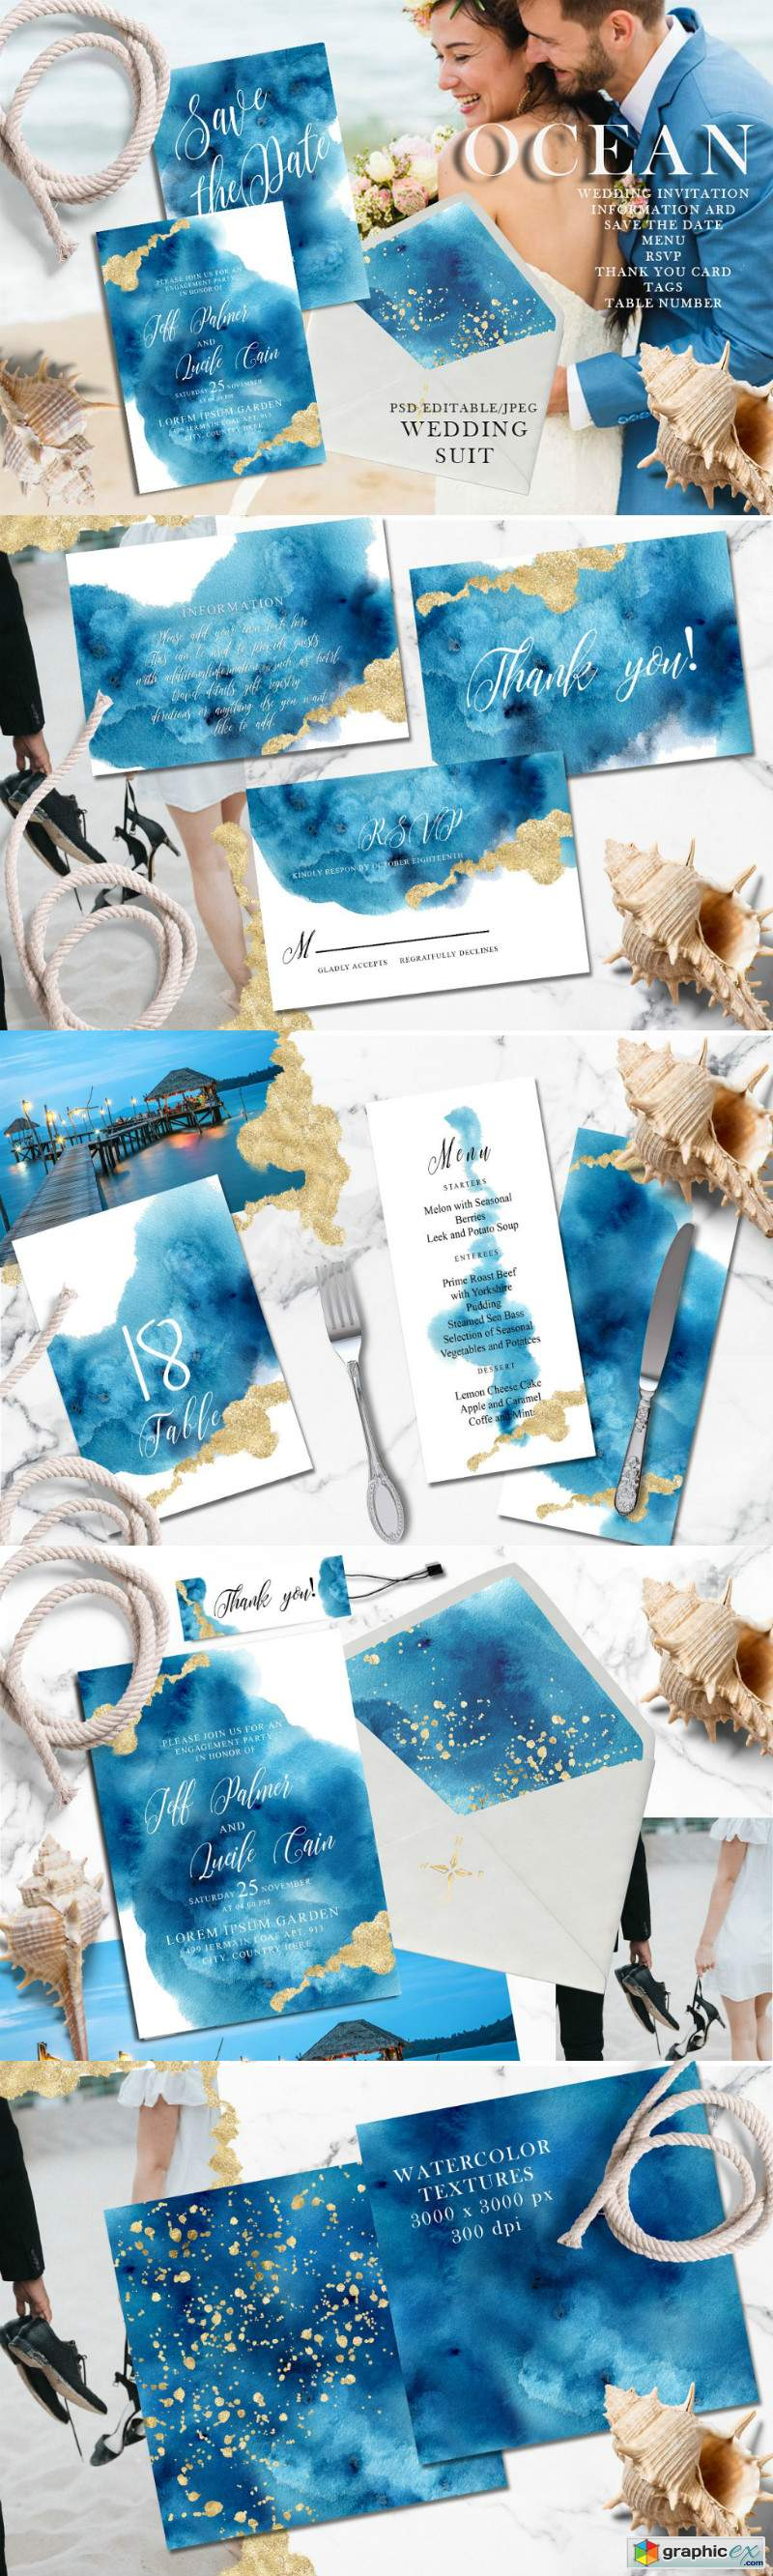 Ocean wedding invitations suit